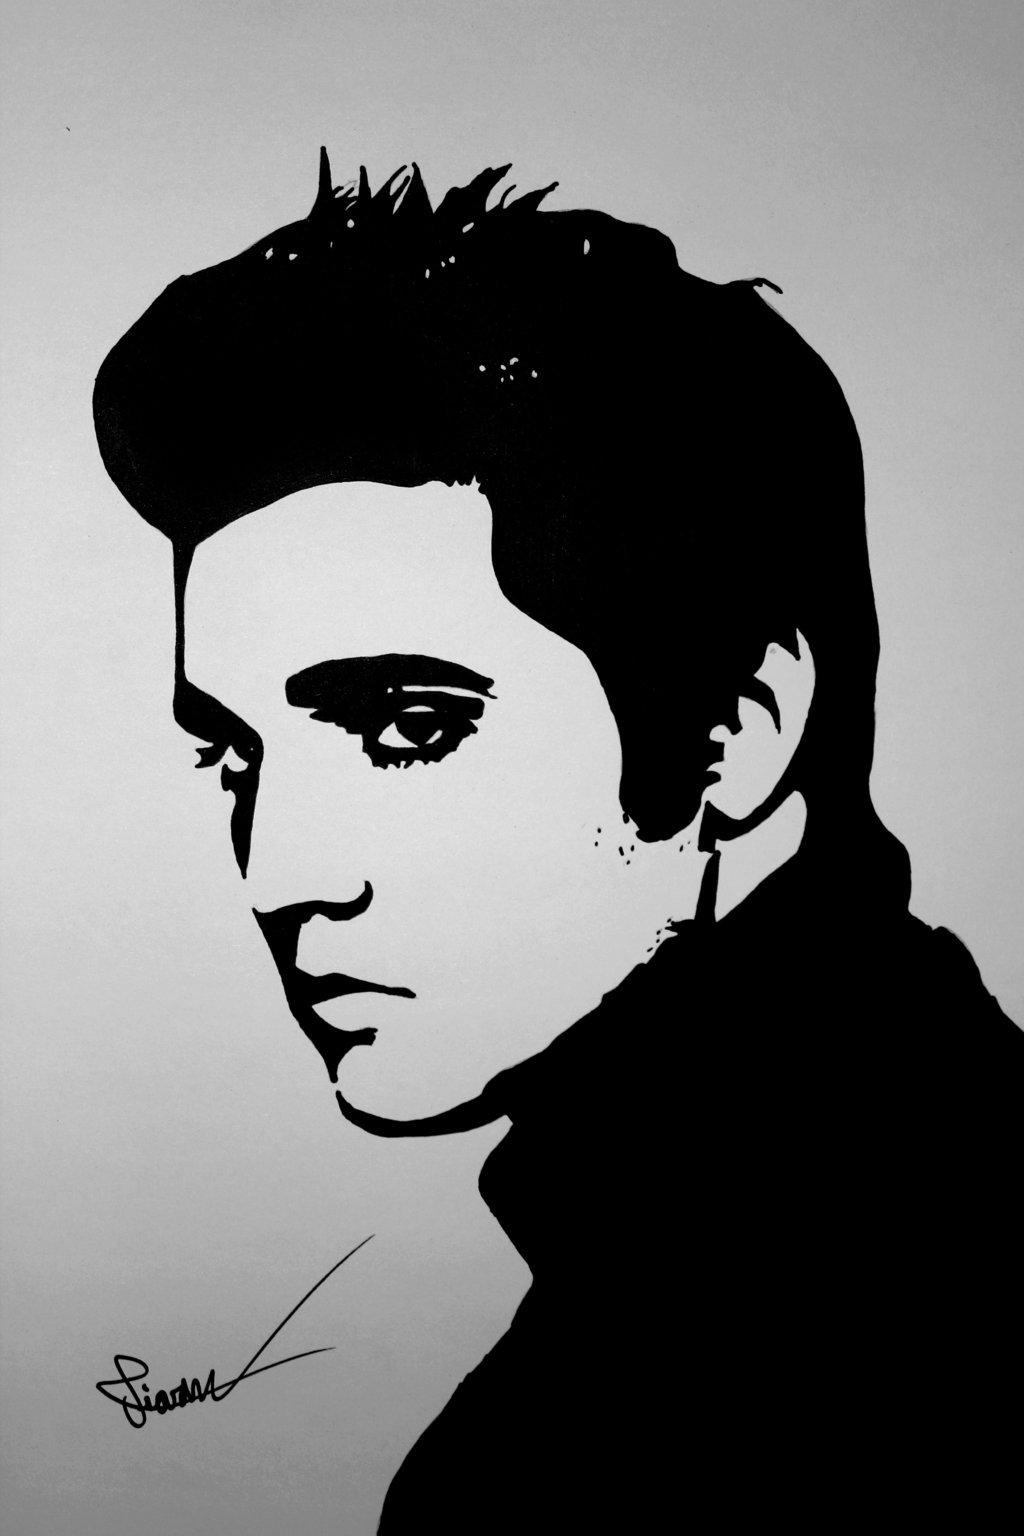 elvis presley drawing elvis presley drawing pointallism drawing by mike oliver elvis drawing presley